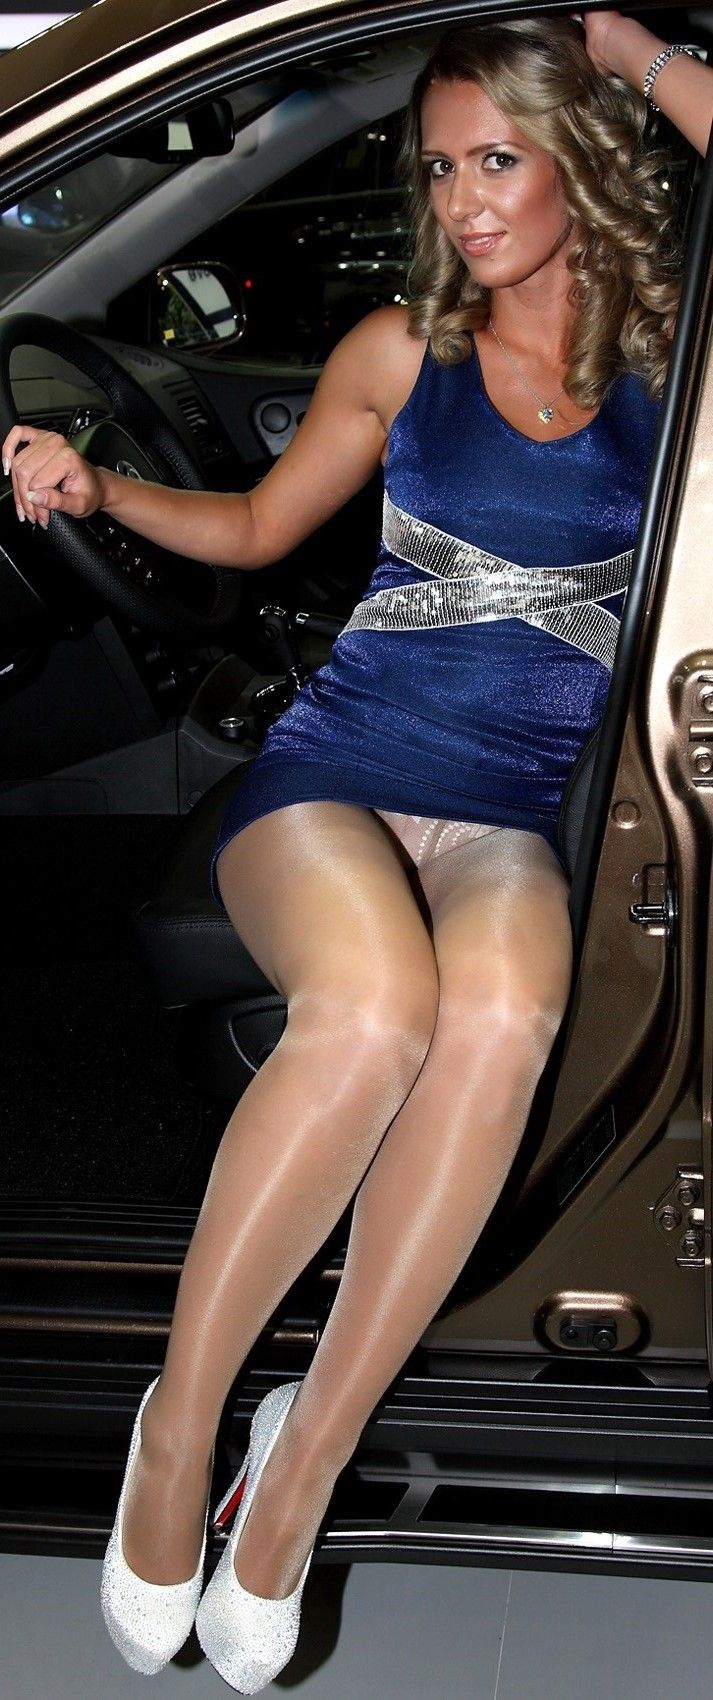 Upskirt Nude Images